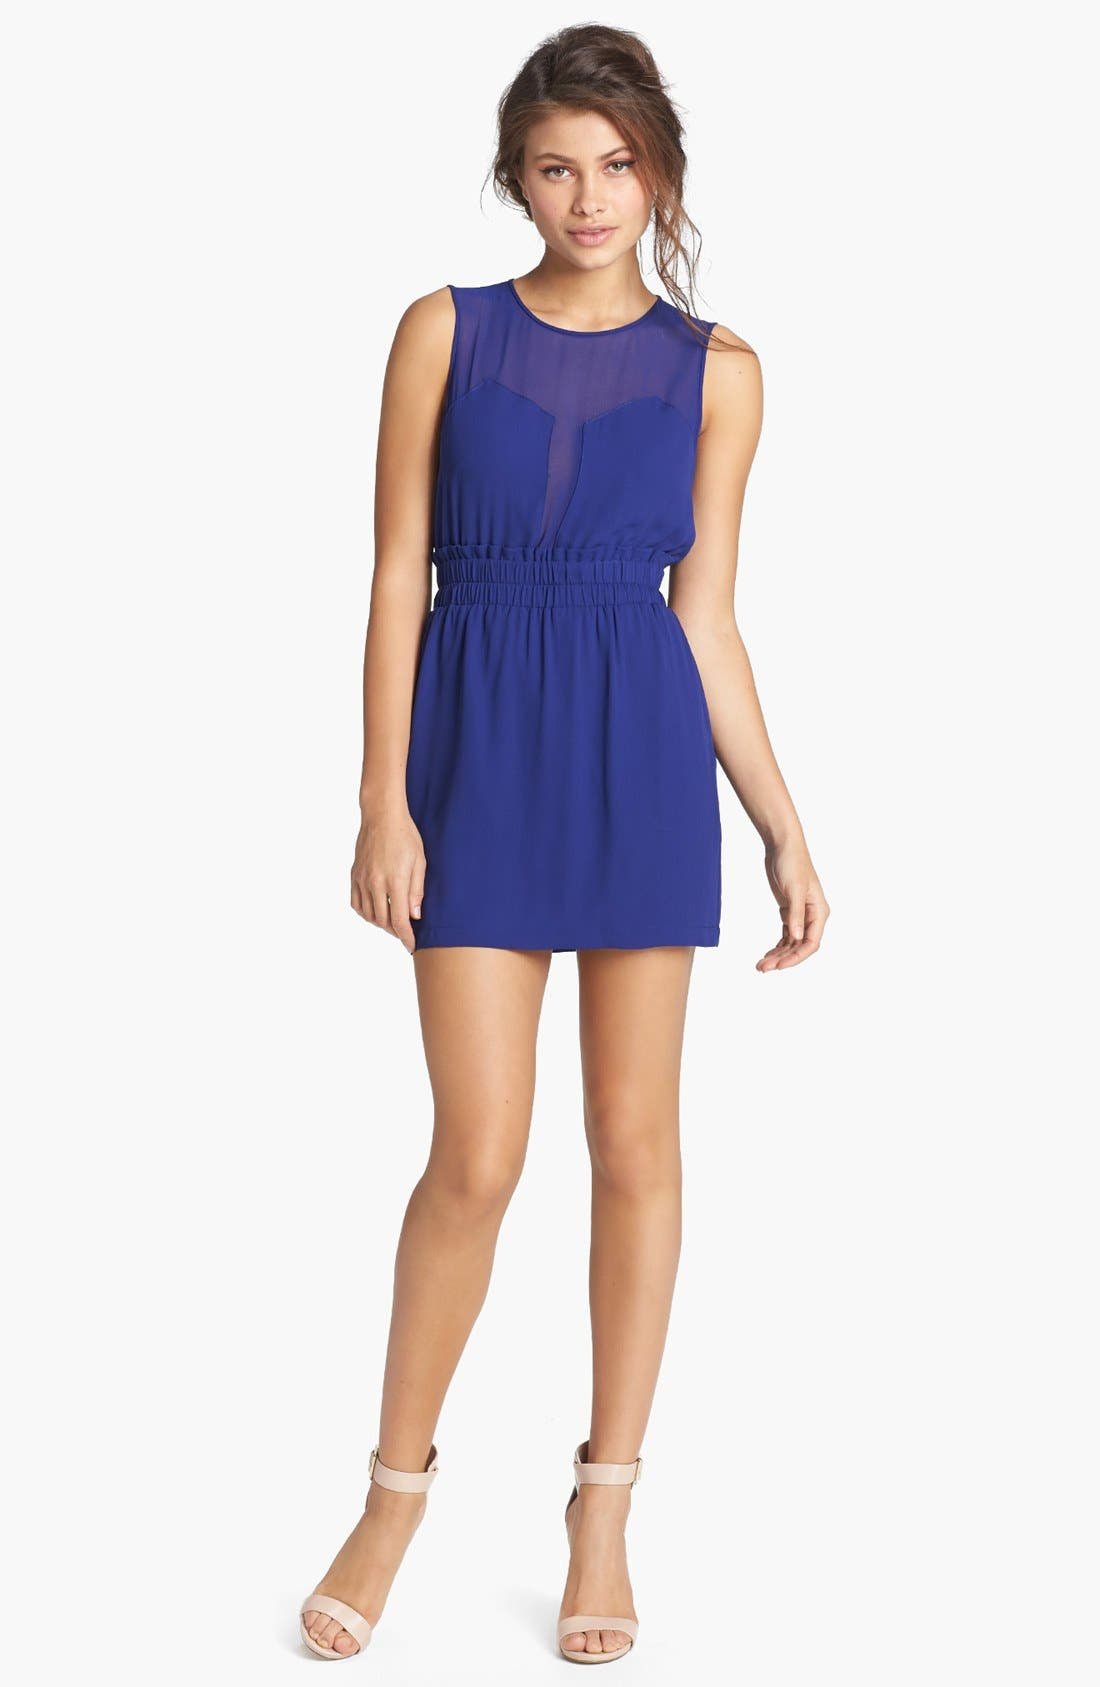 Main Image - BCBGMAXAZRIA Illusion Cutout Fit & Flare Dress